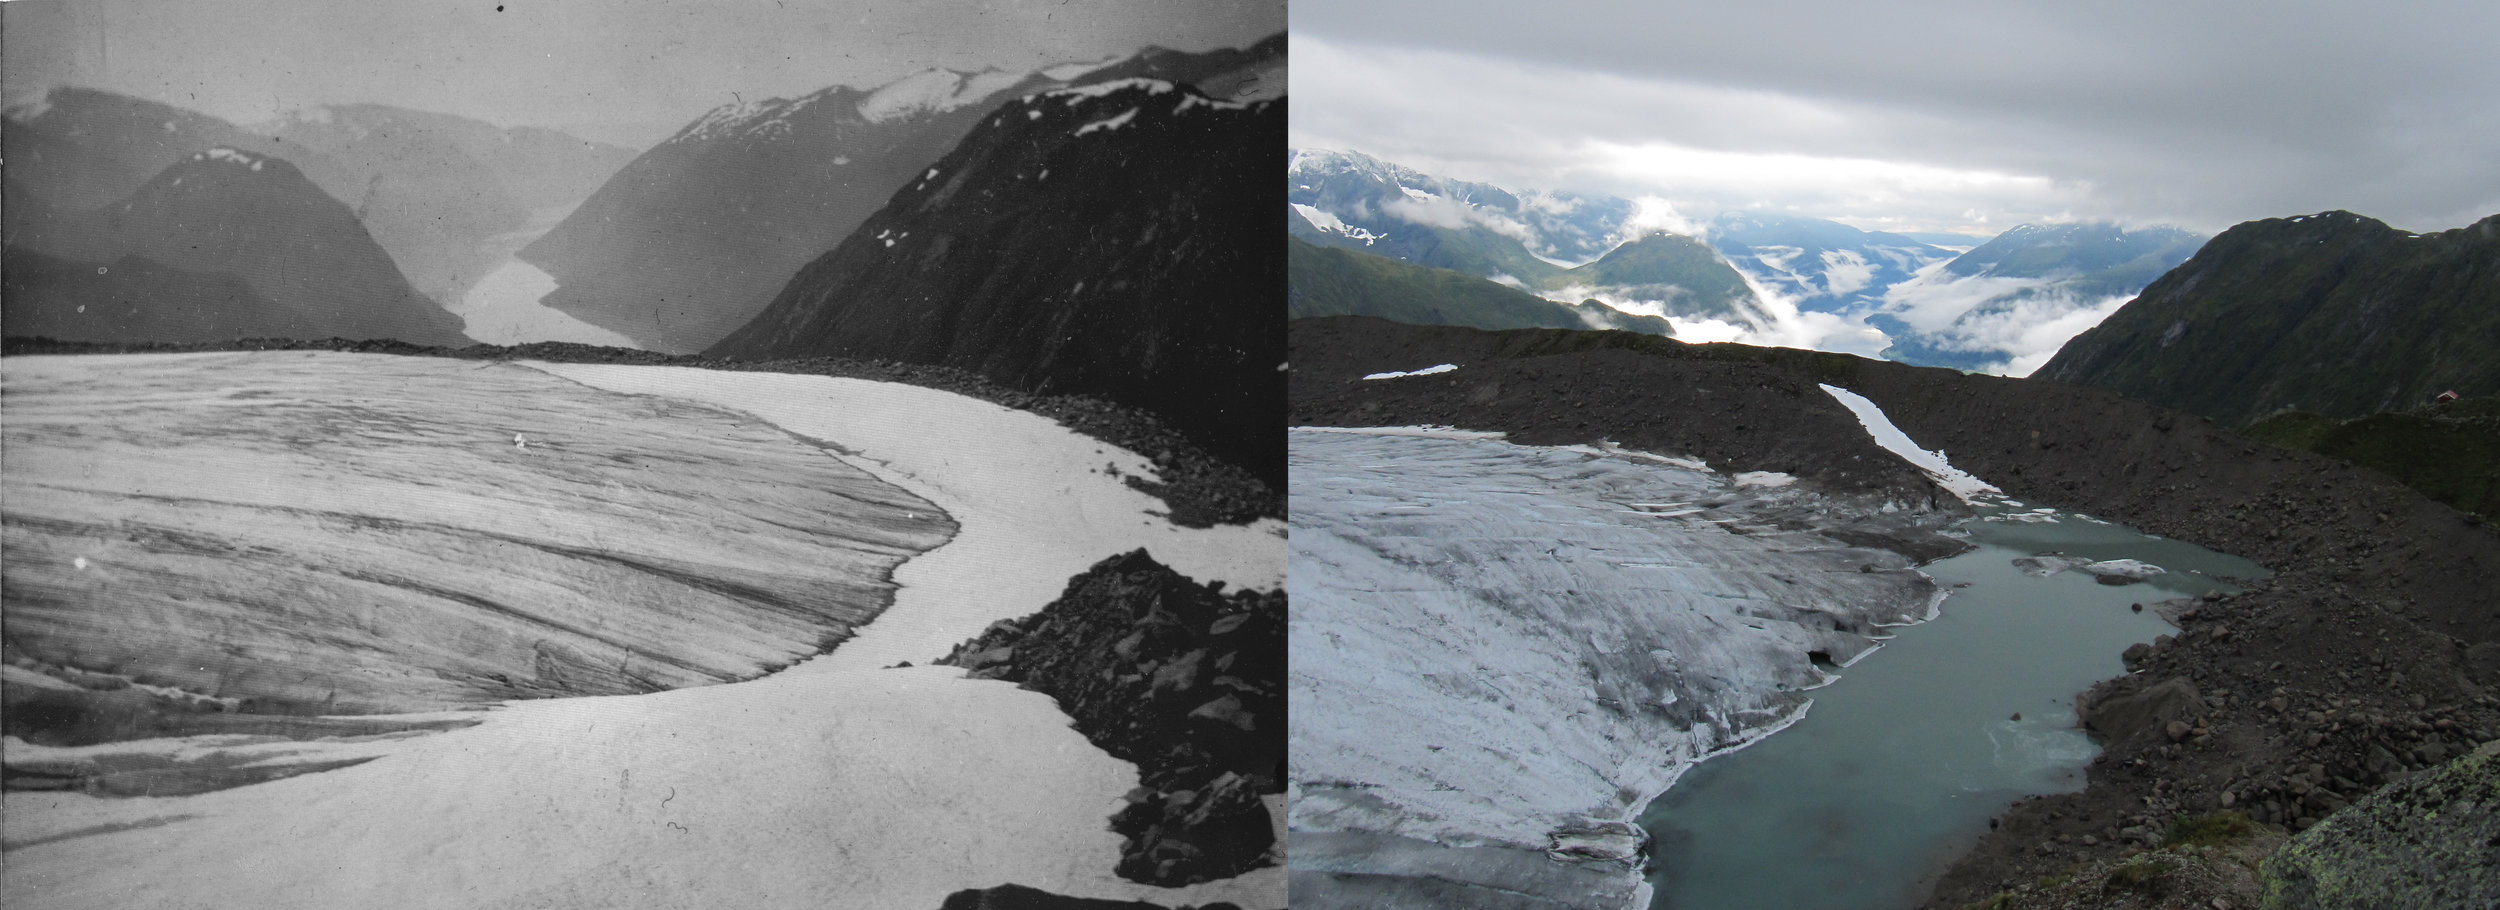 Store Supphellebreen (Flatbreen) in 1906 (photo: Monchton) and 2012 (photo: Pål Gran Kielland)